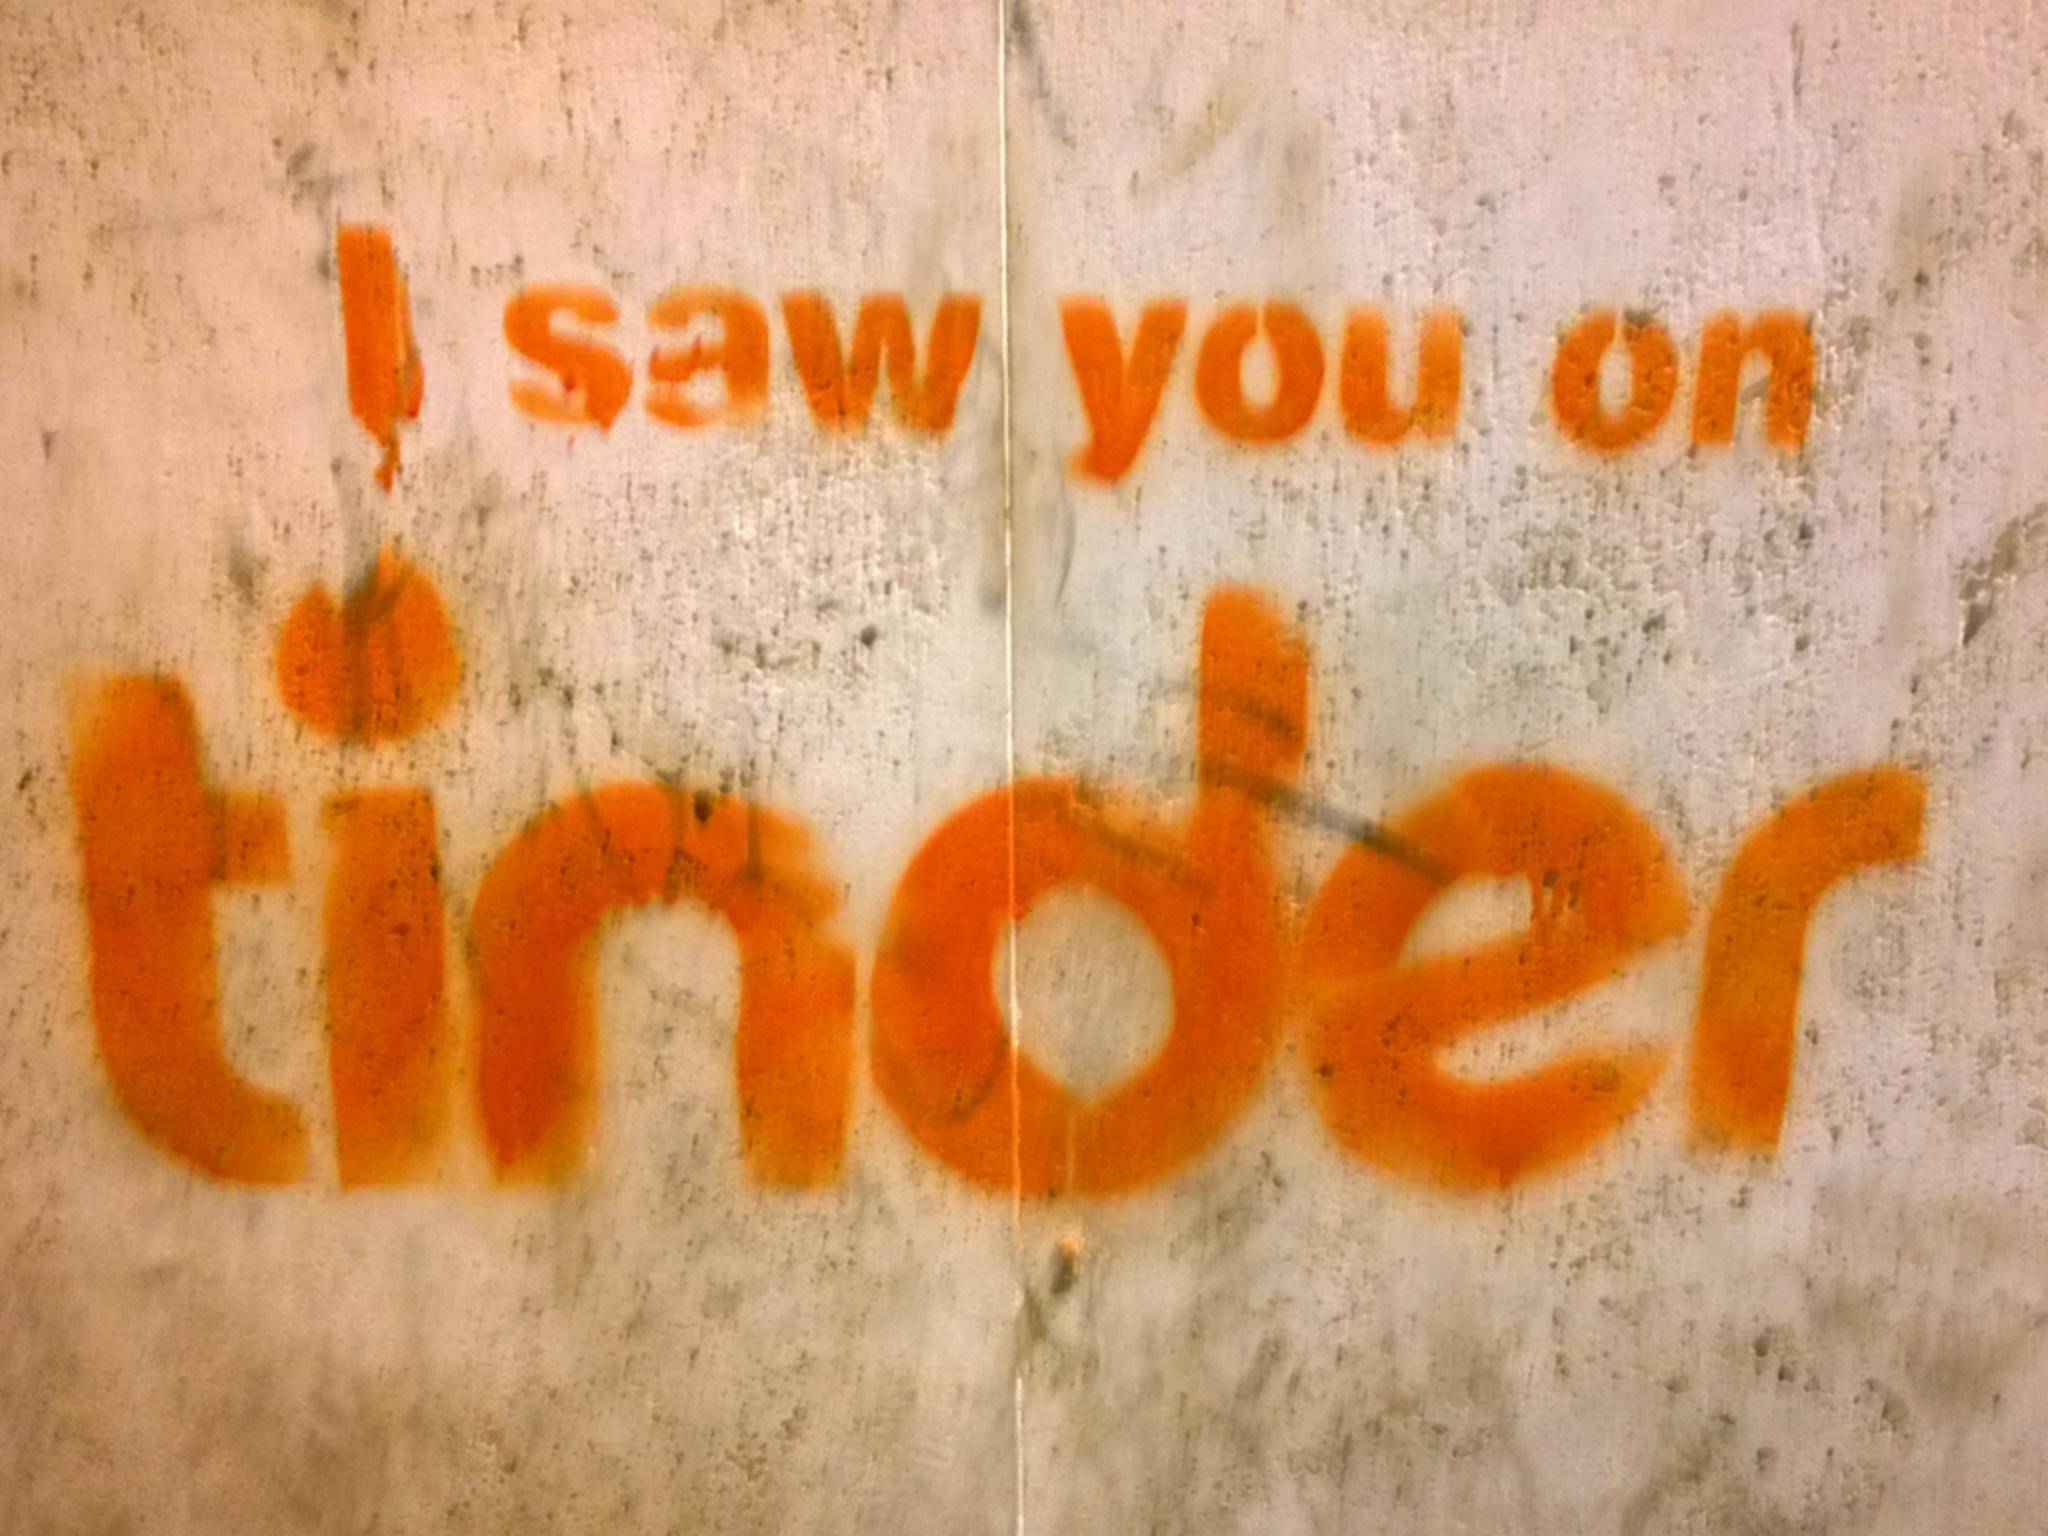 Die Dating-App Tinder hat den Foto-Messenger Tappy übernommen.